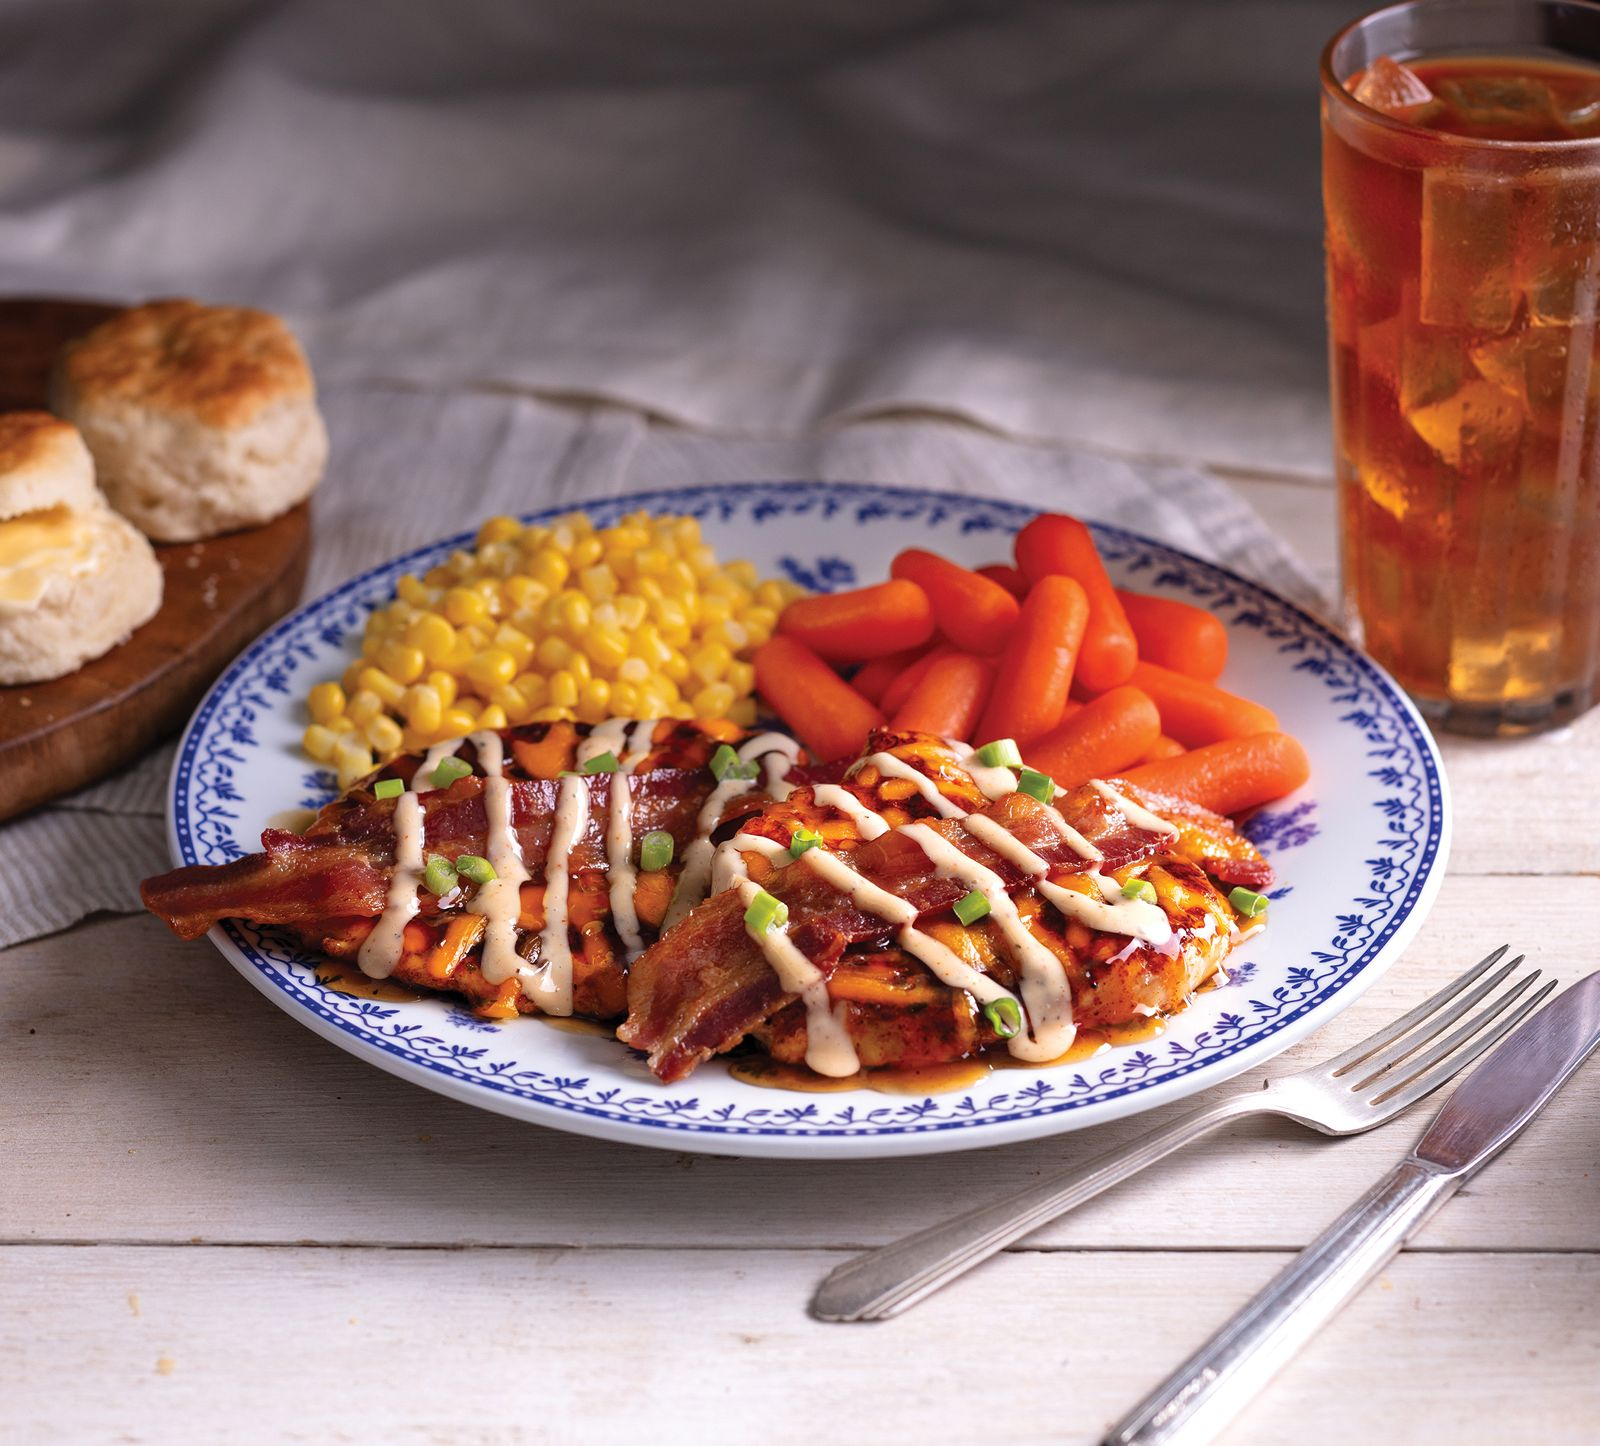 Cracker Barrel Old Country Store Launches Simplified Menu Offering New Signature, Craveable Dinner Classics